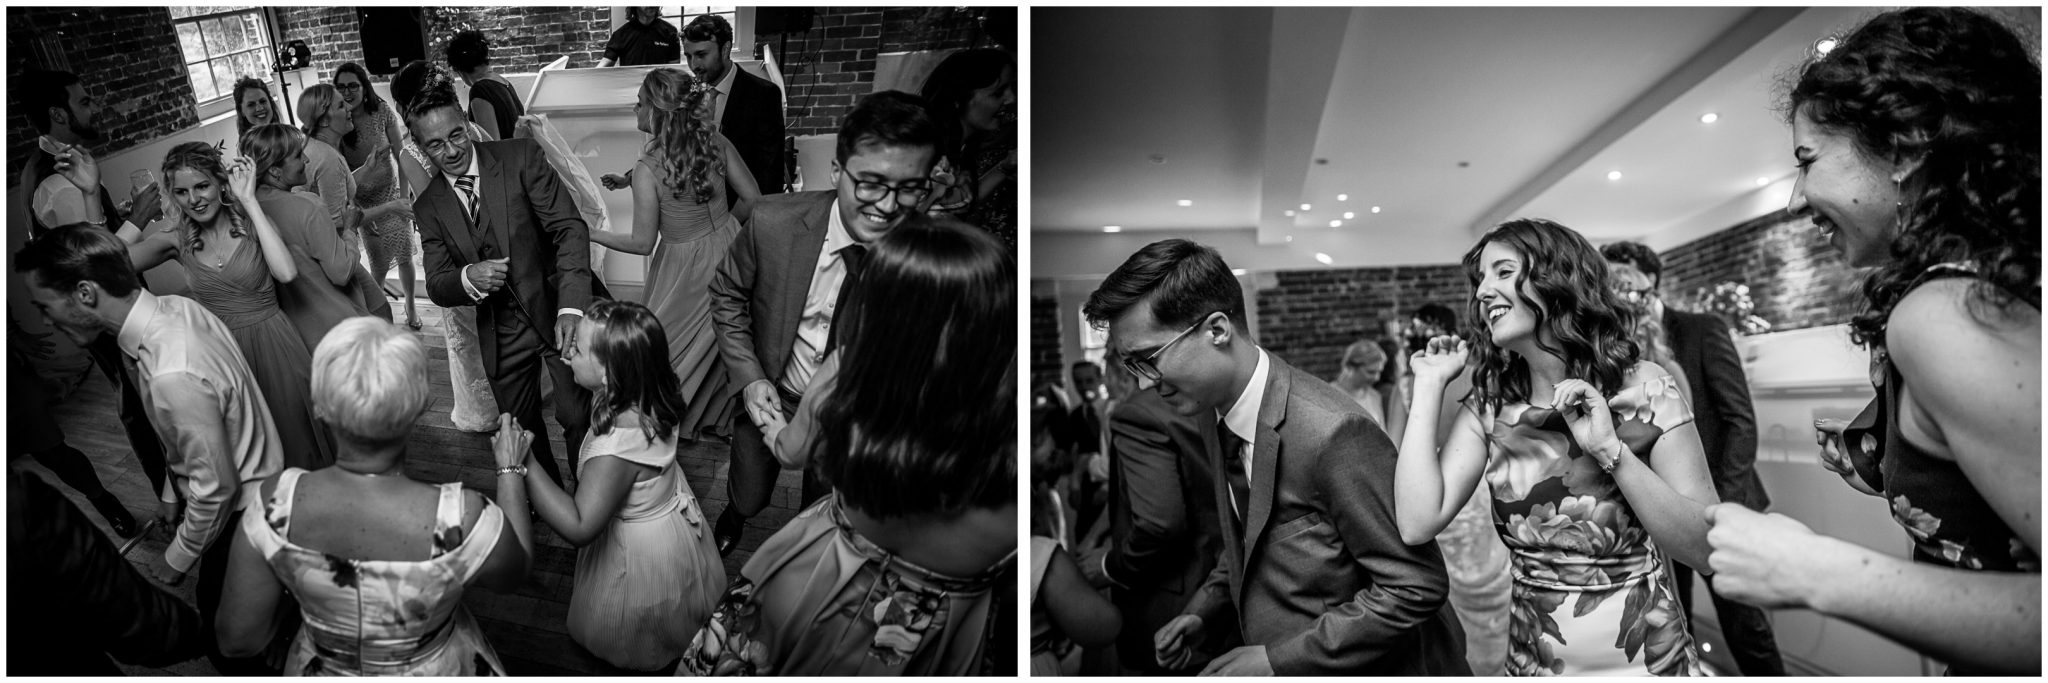 Sopley Mill wedding photography guests partying black and white